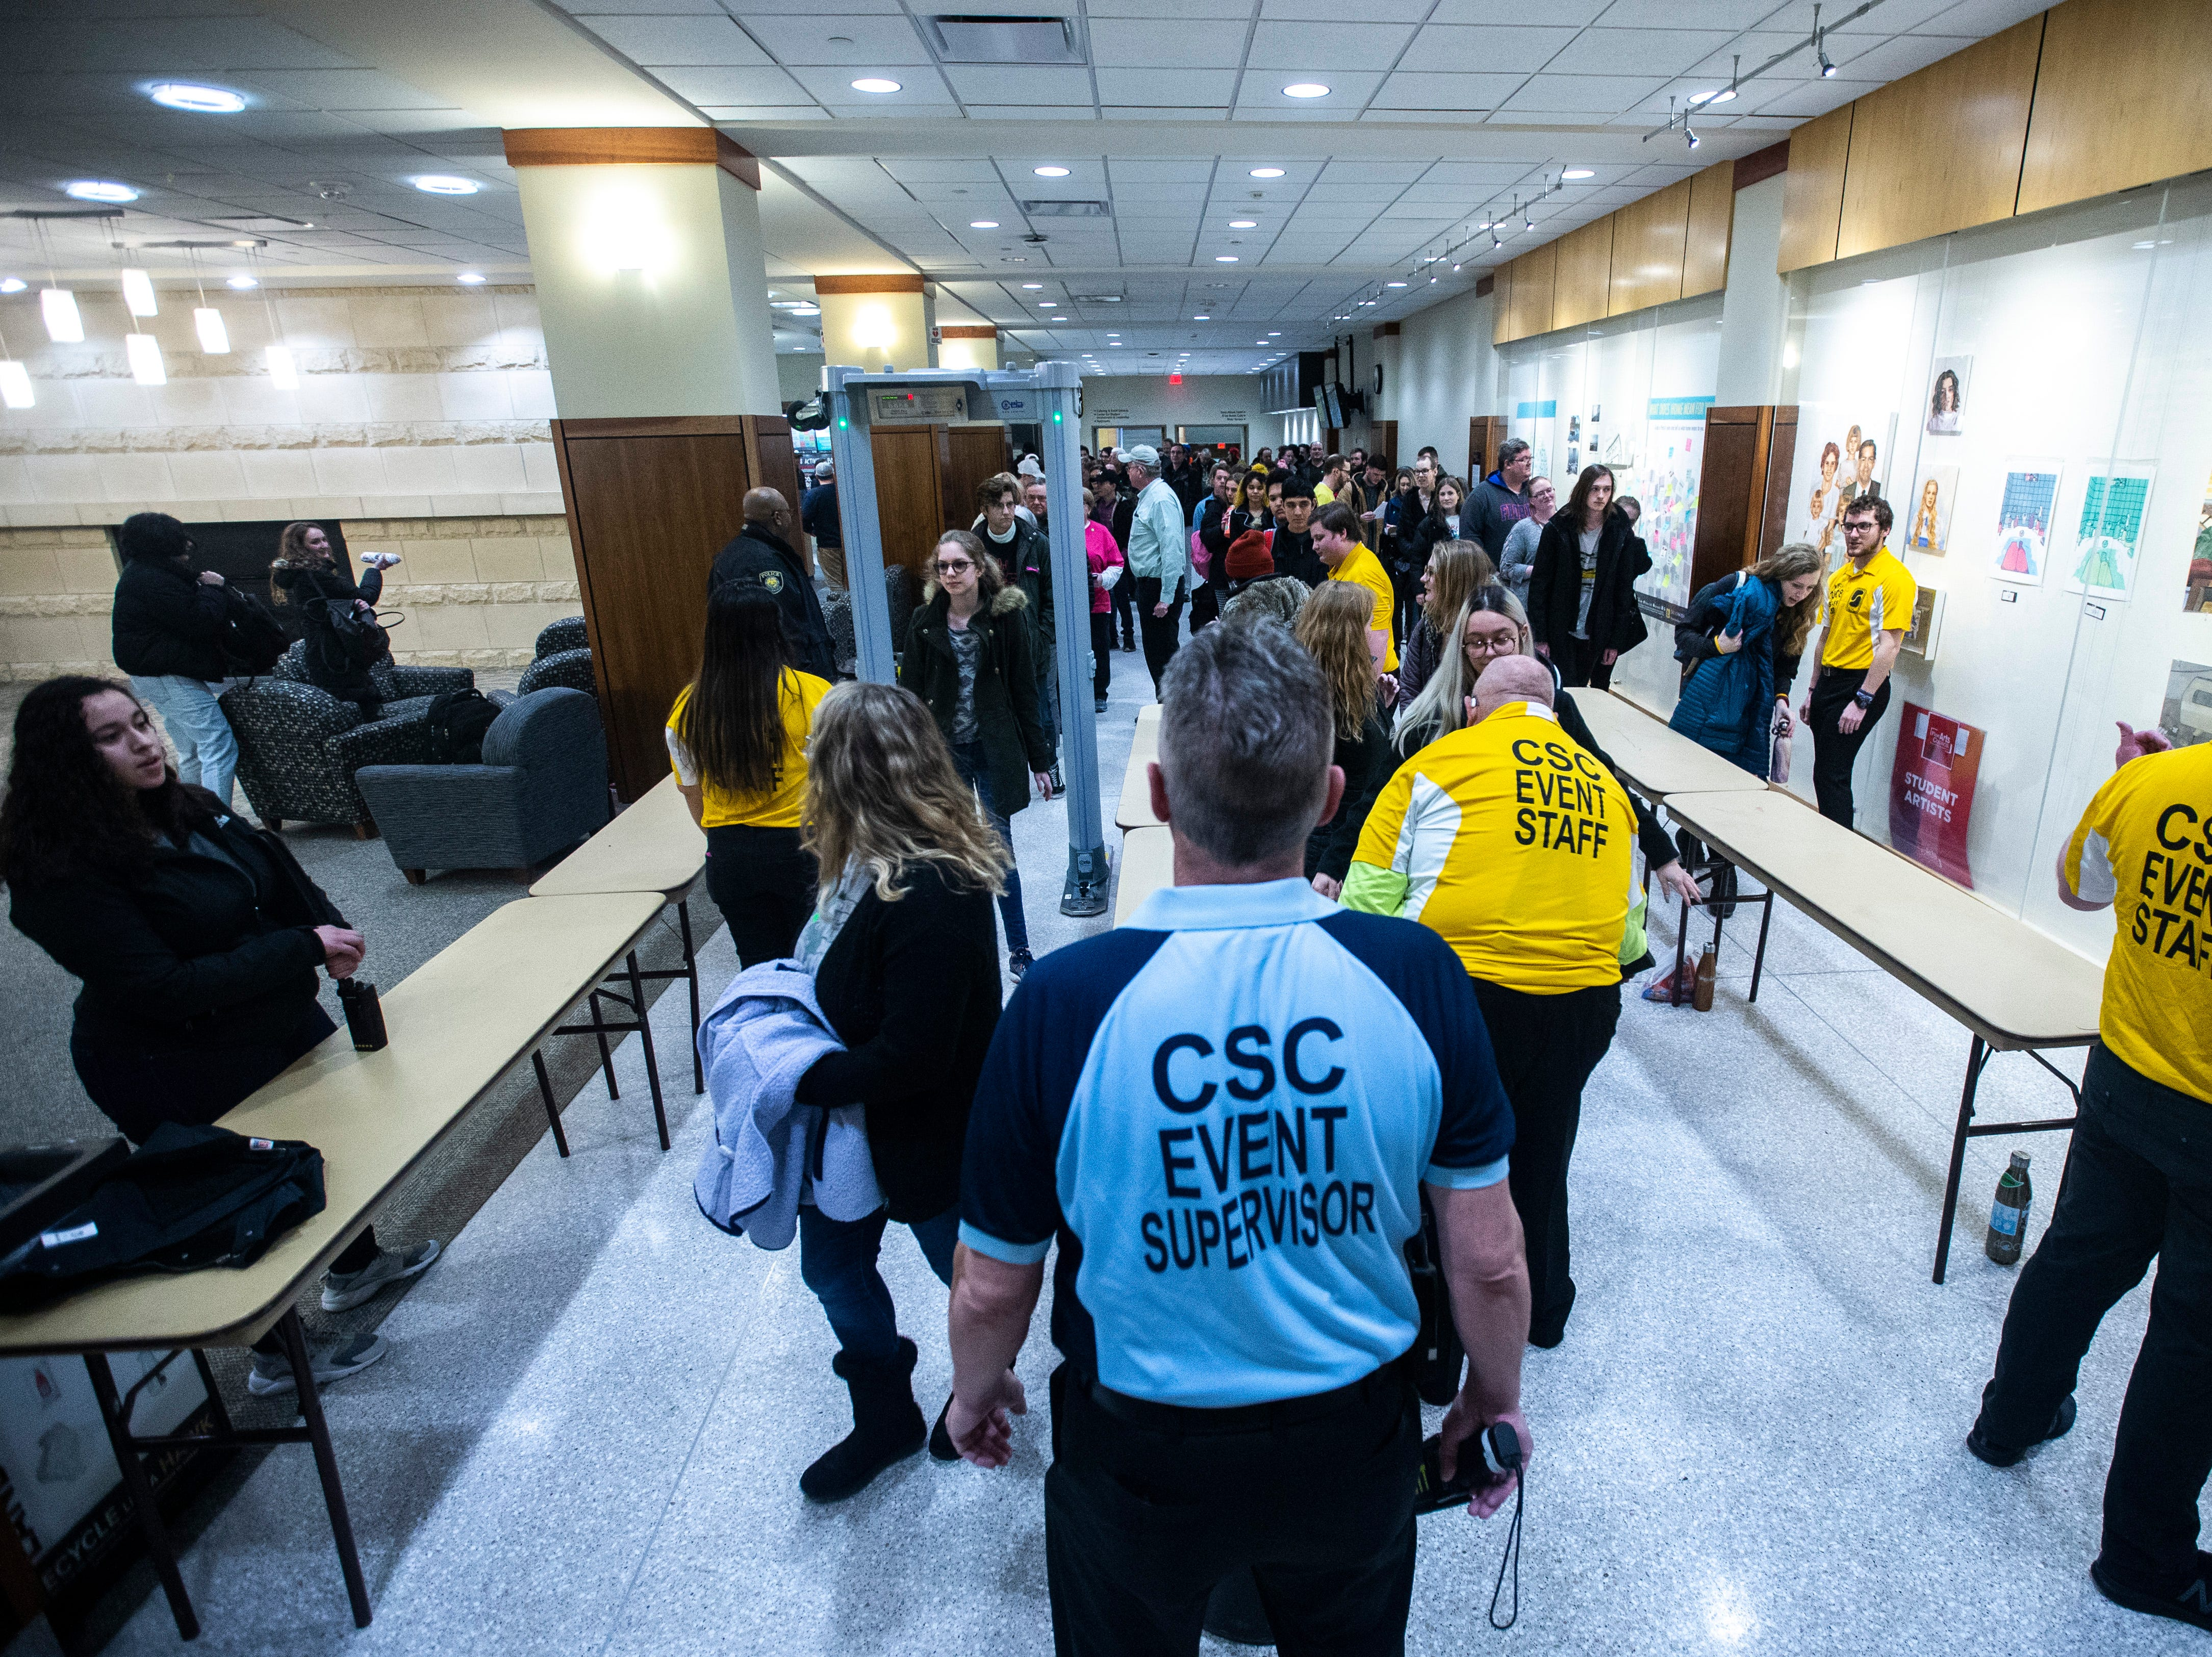 CSC security screen guests before U.S. Sen. Bernie Sanders, I-VT, speaks at an event during his first trip to the state ahead of the caucus, Friday, March 8, 2019, at the Iowa Memorial Union on the University of Iowa campus in Iowa City, Iowa.